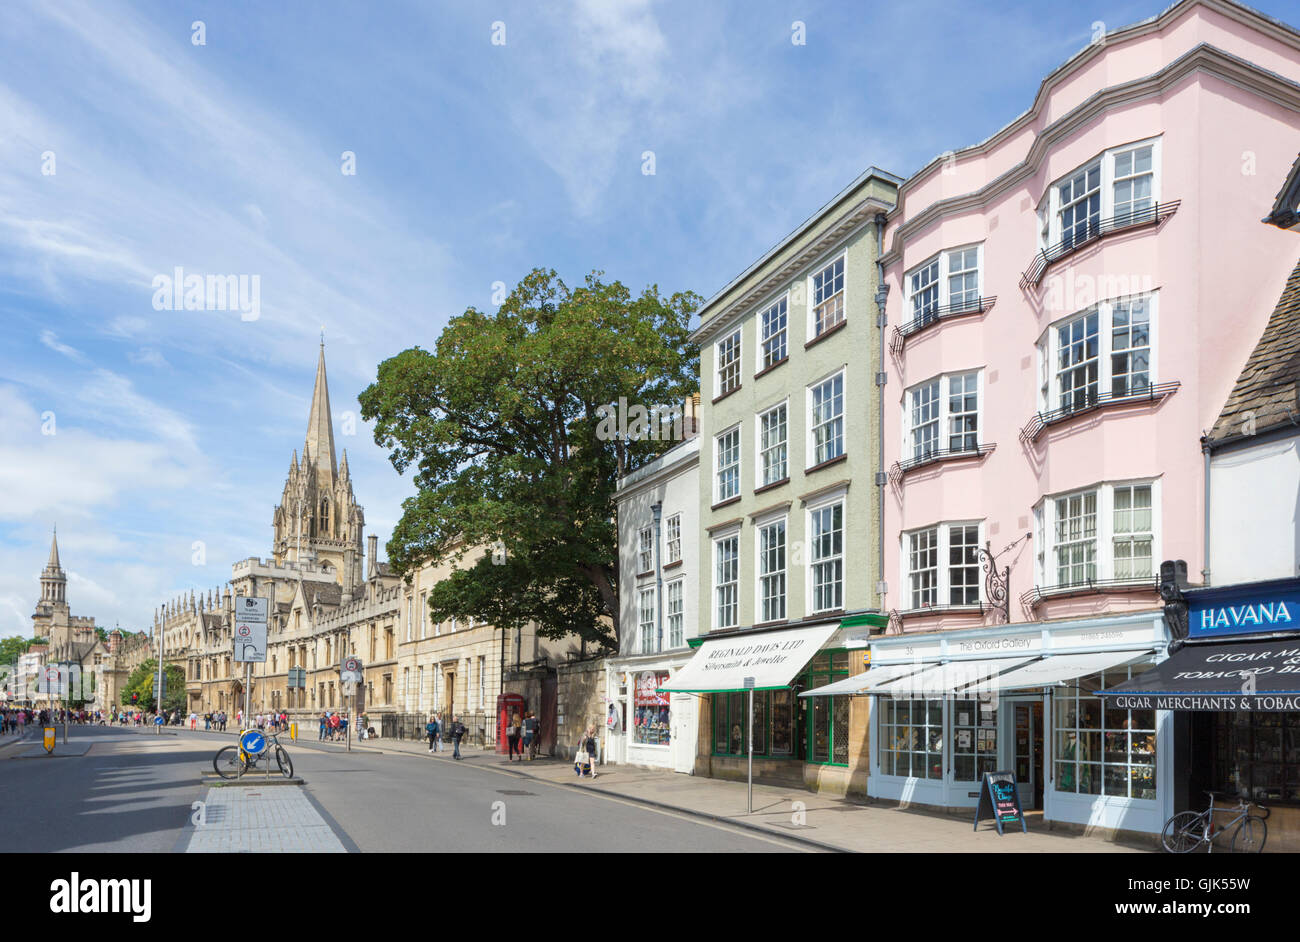 Colorful buildings in High Street, Oxford, Oxfordshire, England, UK - Stock Image